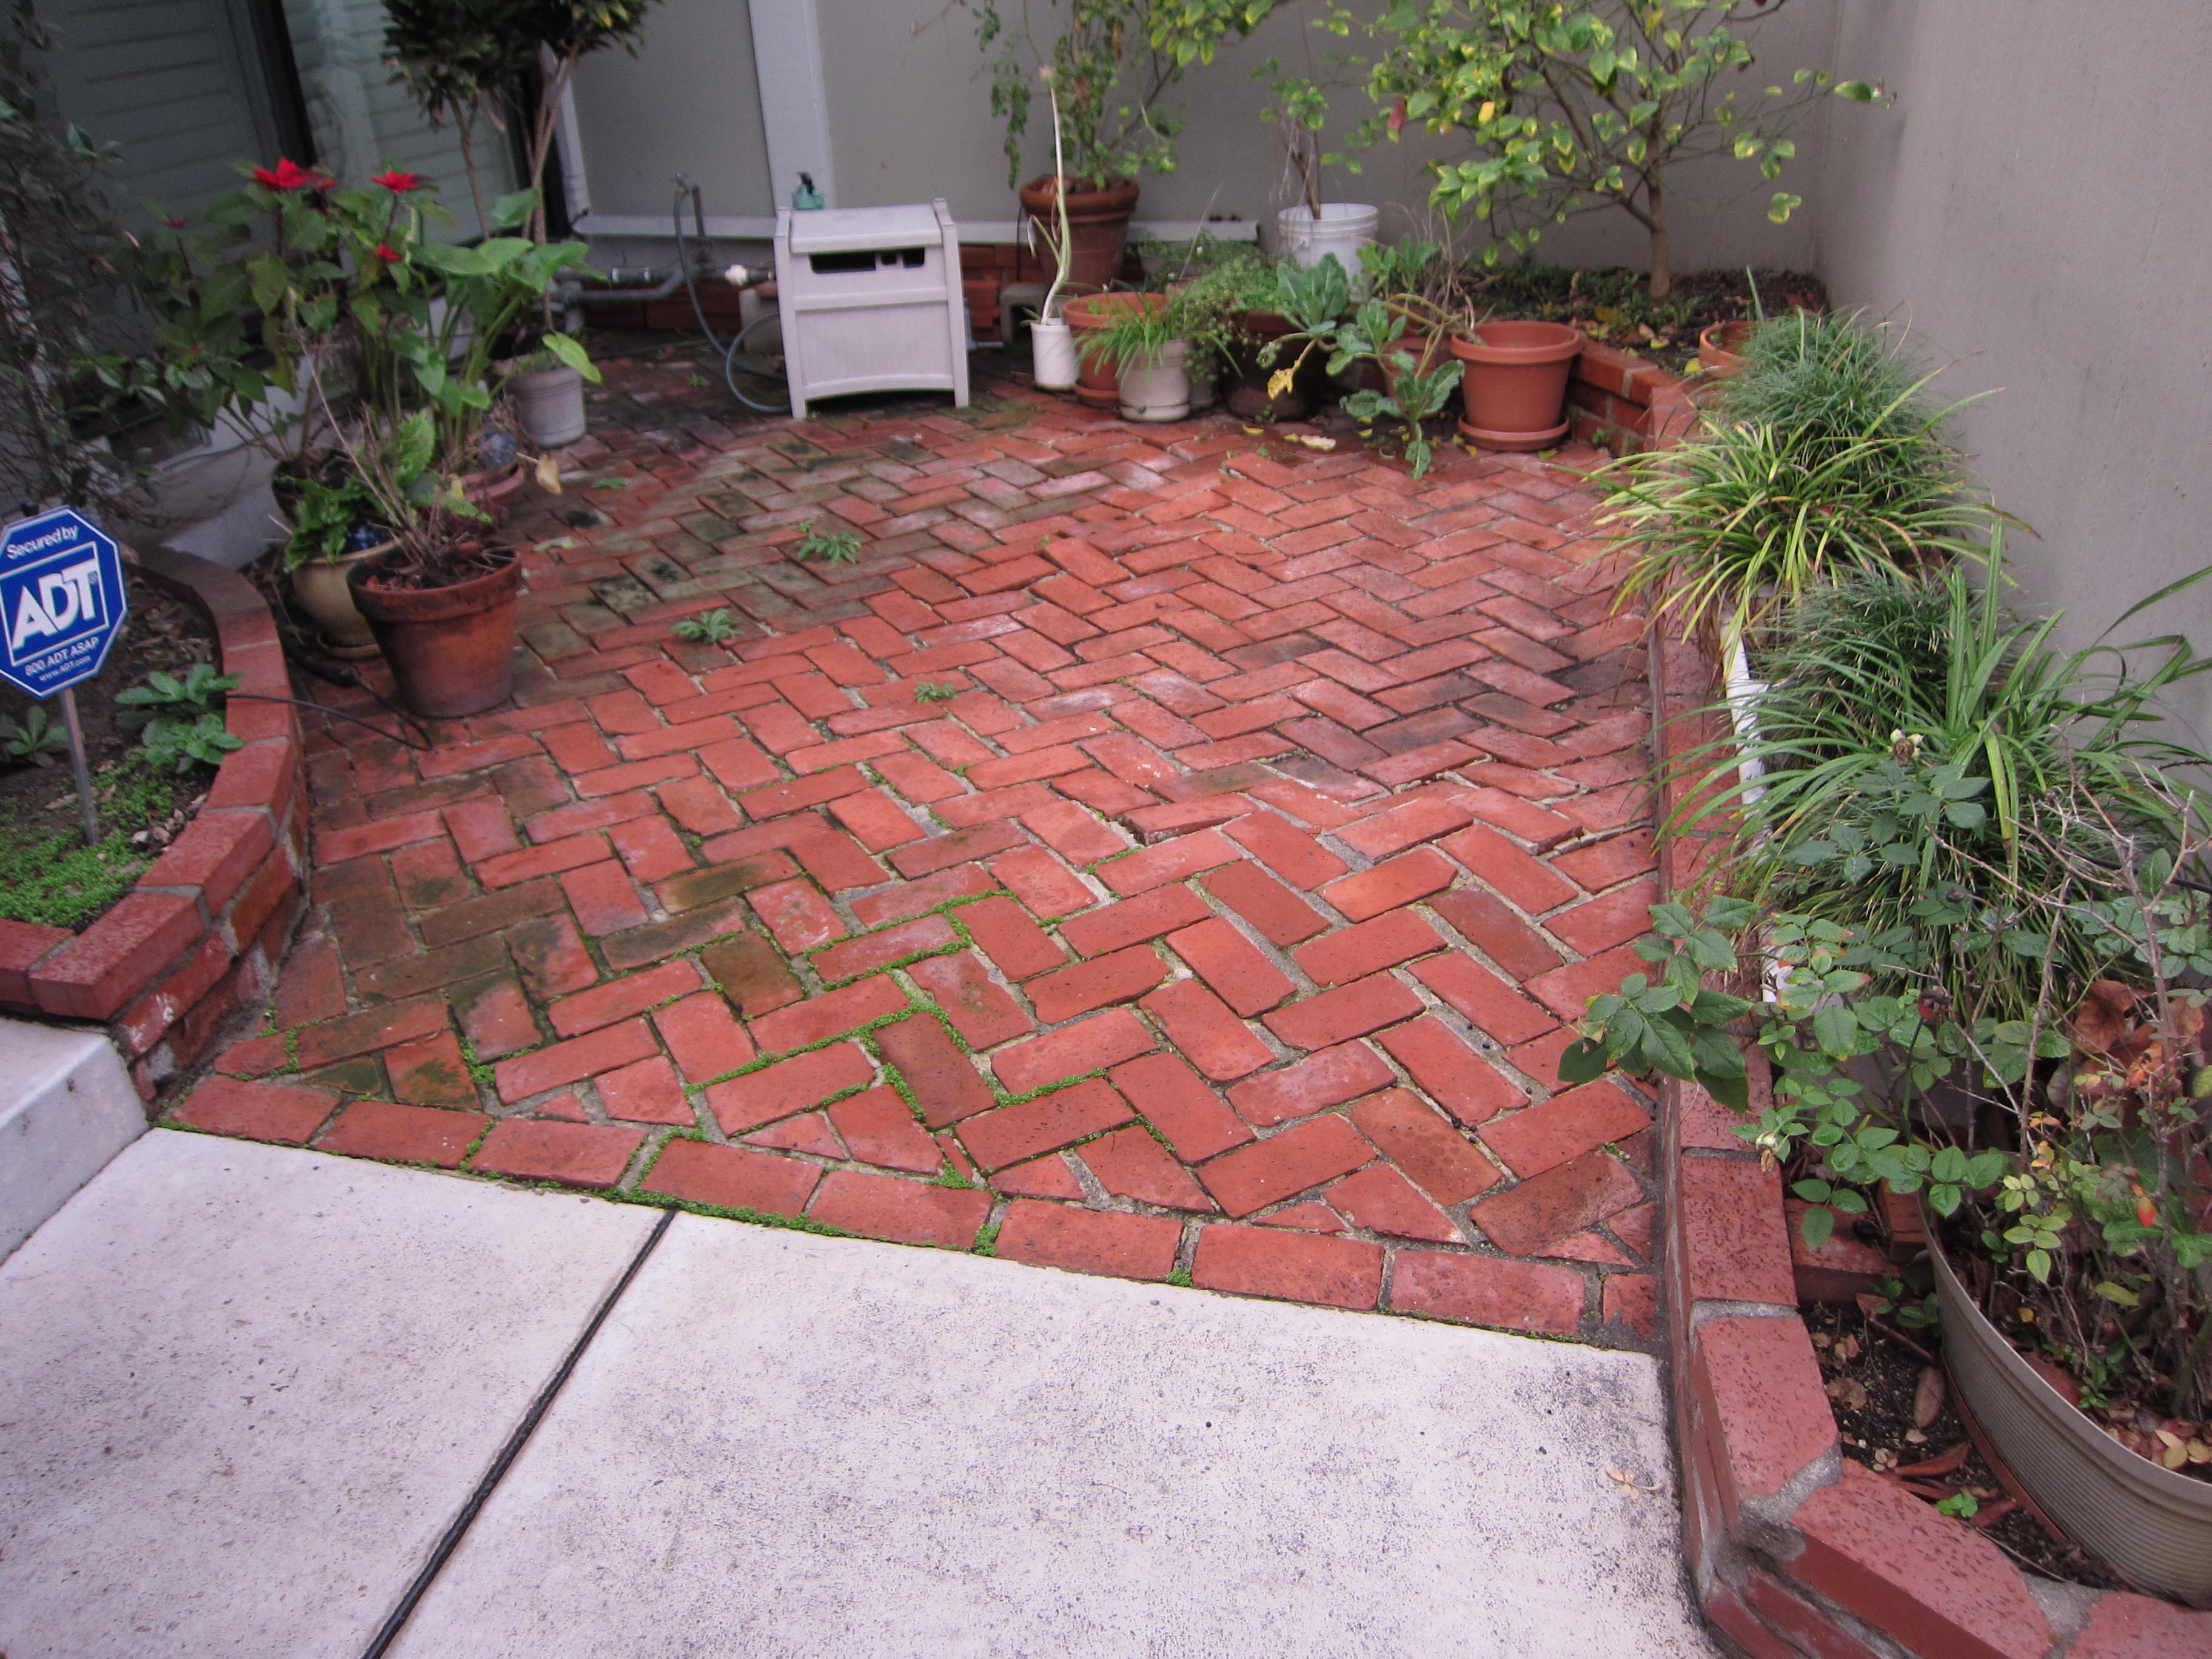 The client's brick patio undulated due to overgrown tree roots.